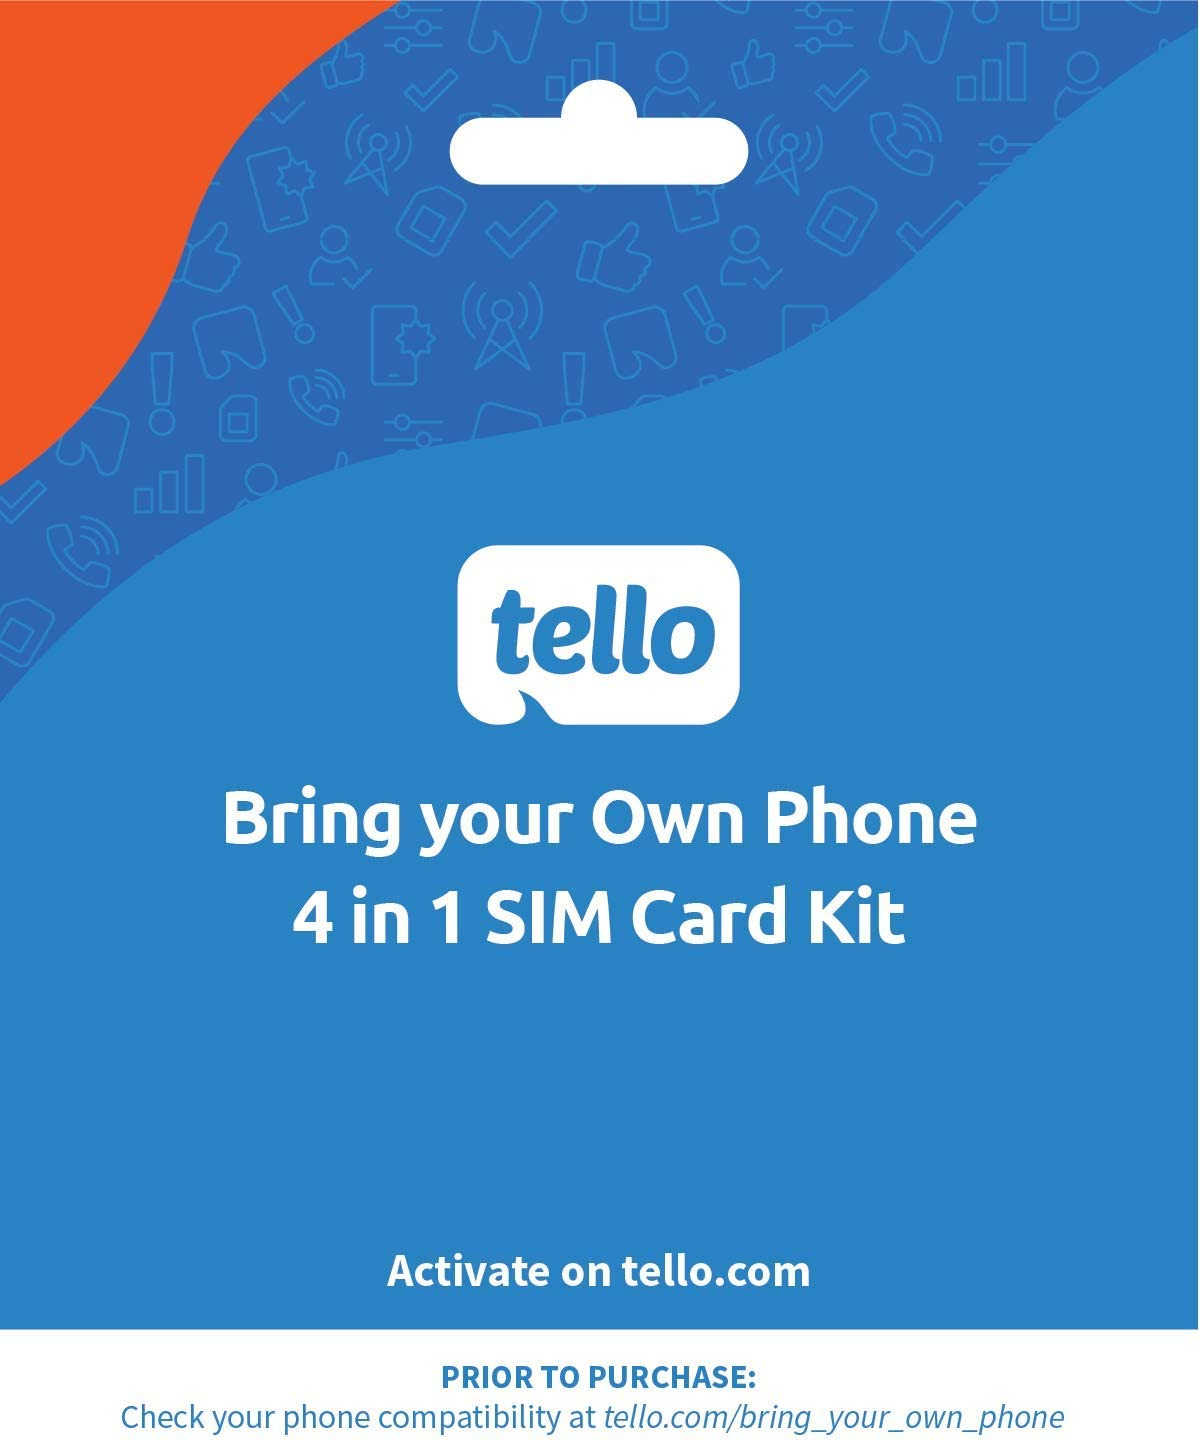 Tello Mobile - Bring Your Own Phone - 4 in 1 SIM Card Kit